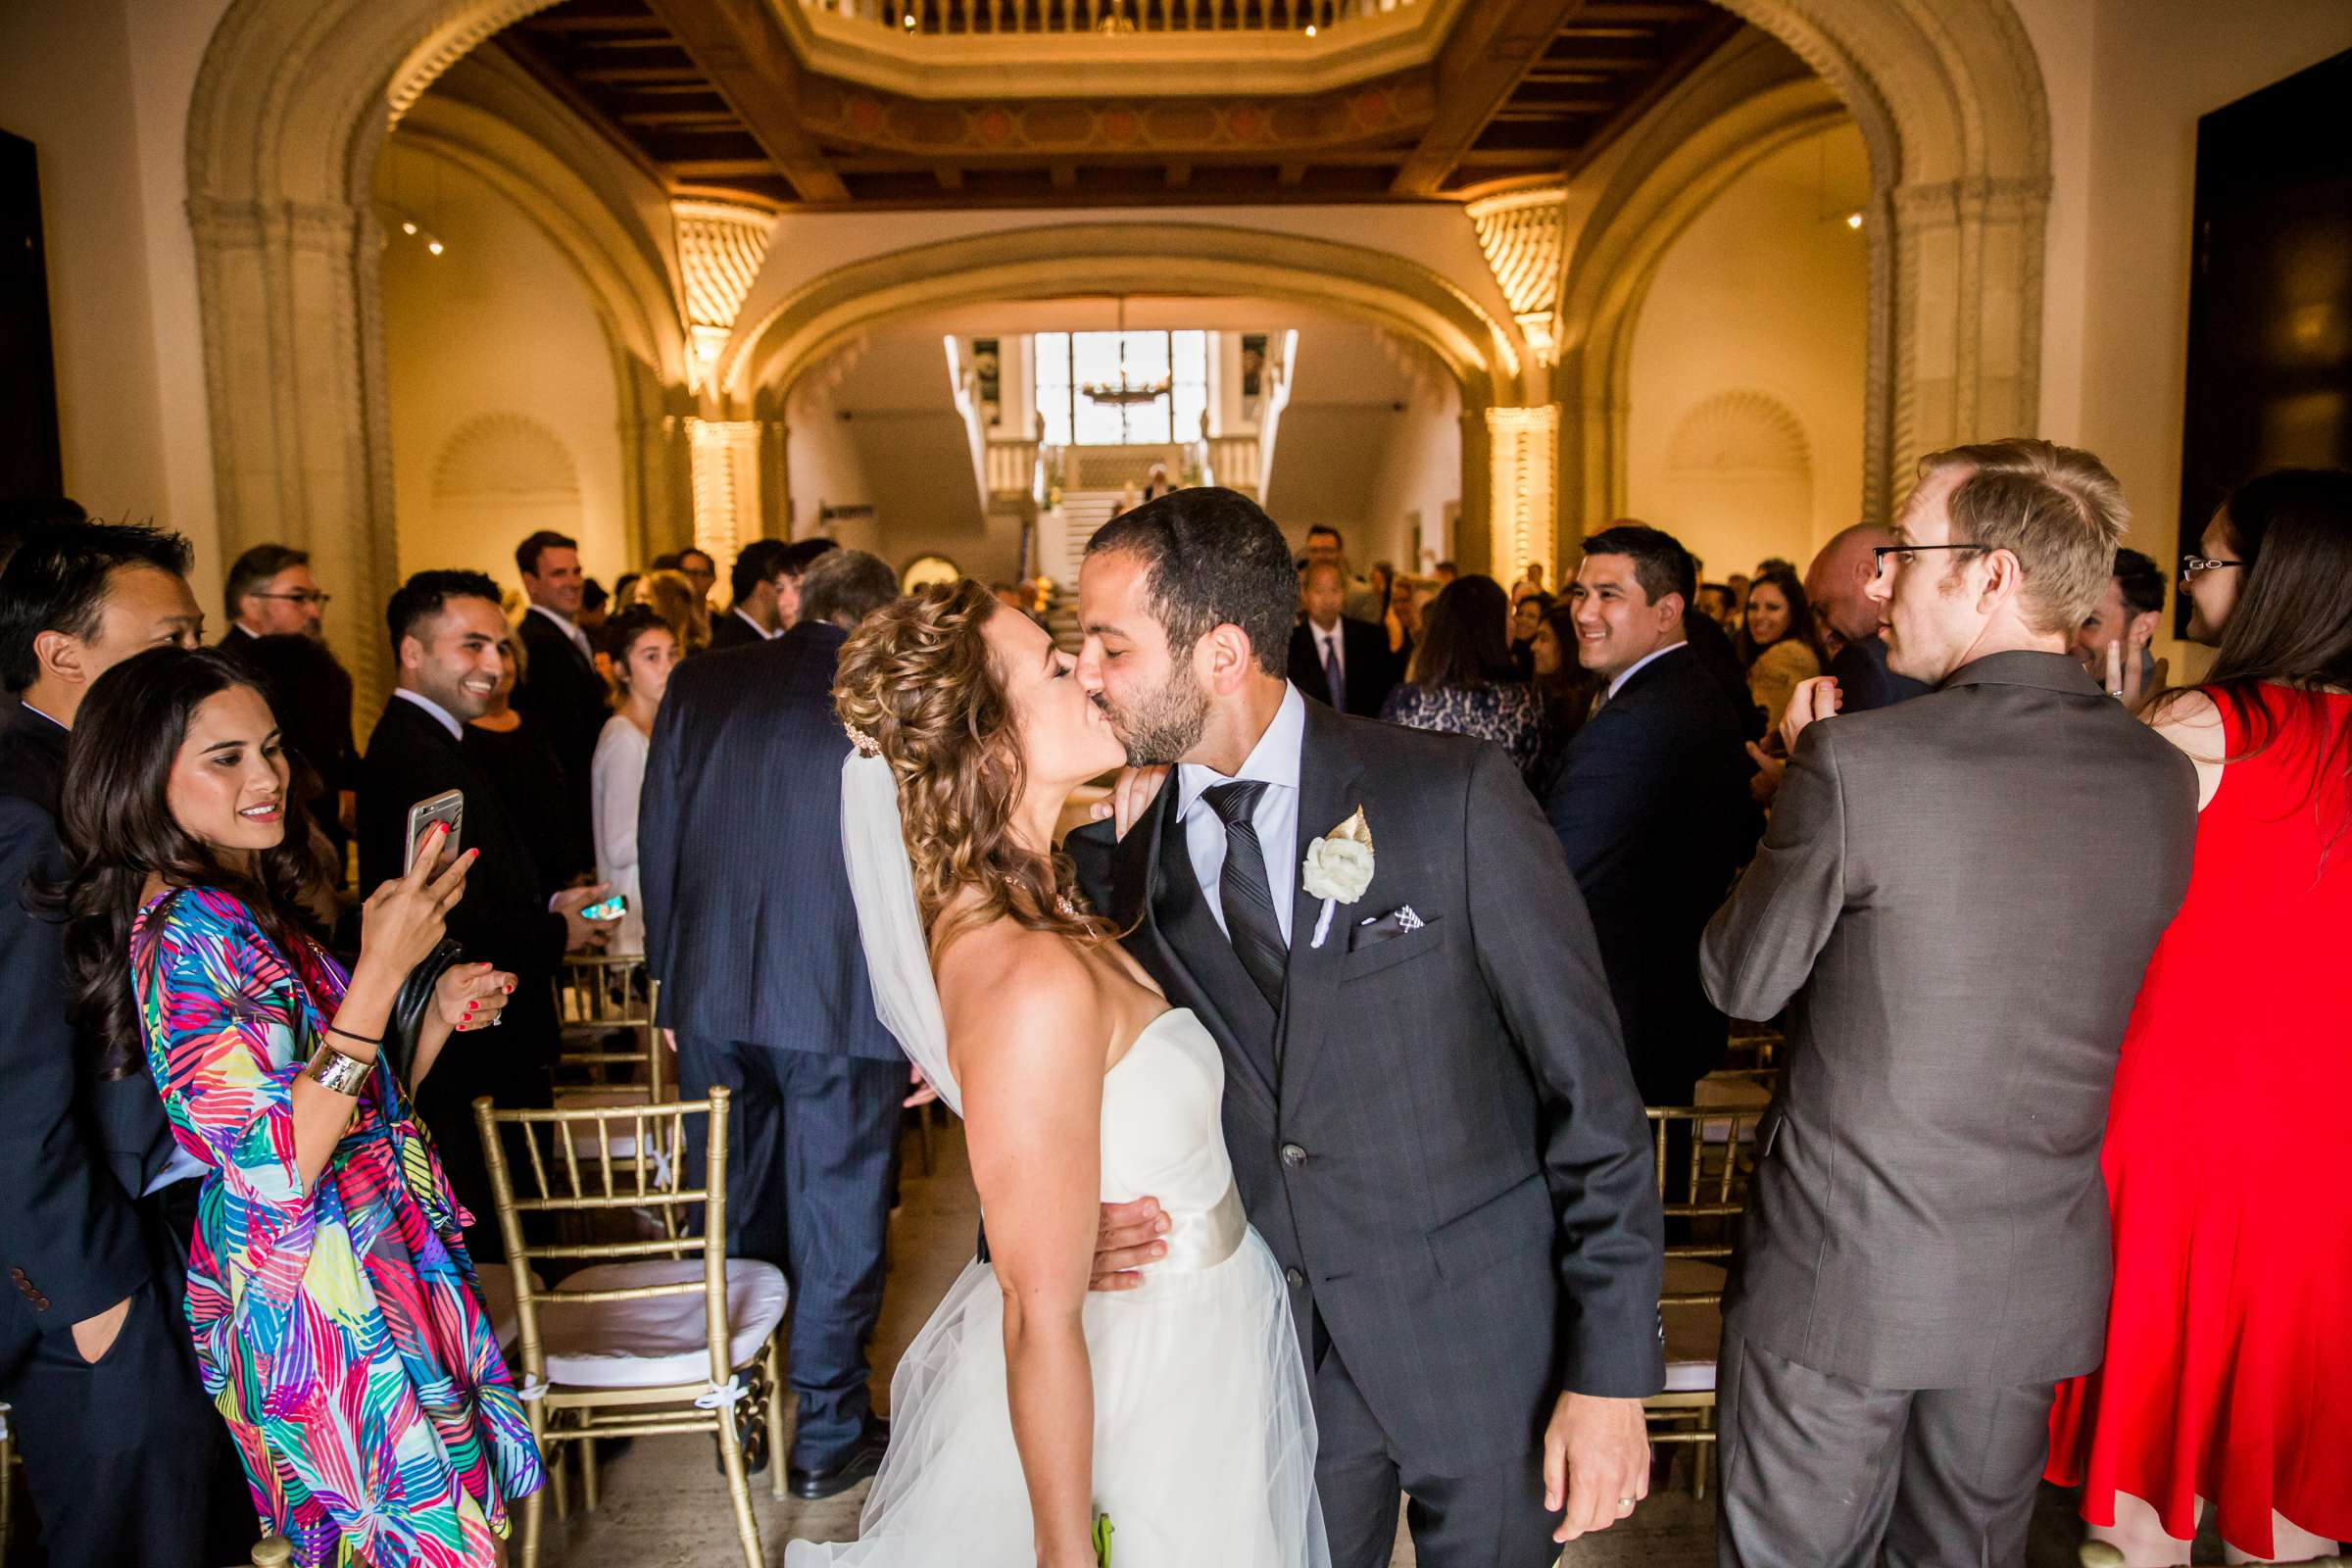 San Diego Museum of Art Wedding coordinated by First Comes Love Weddings & Events, Ruthie and Larry Wedding Photo #236807 by True Photography